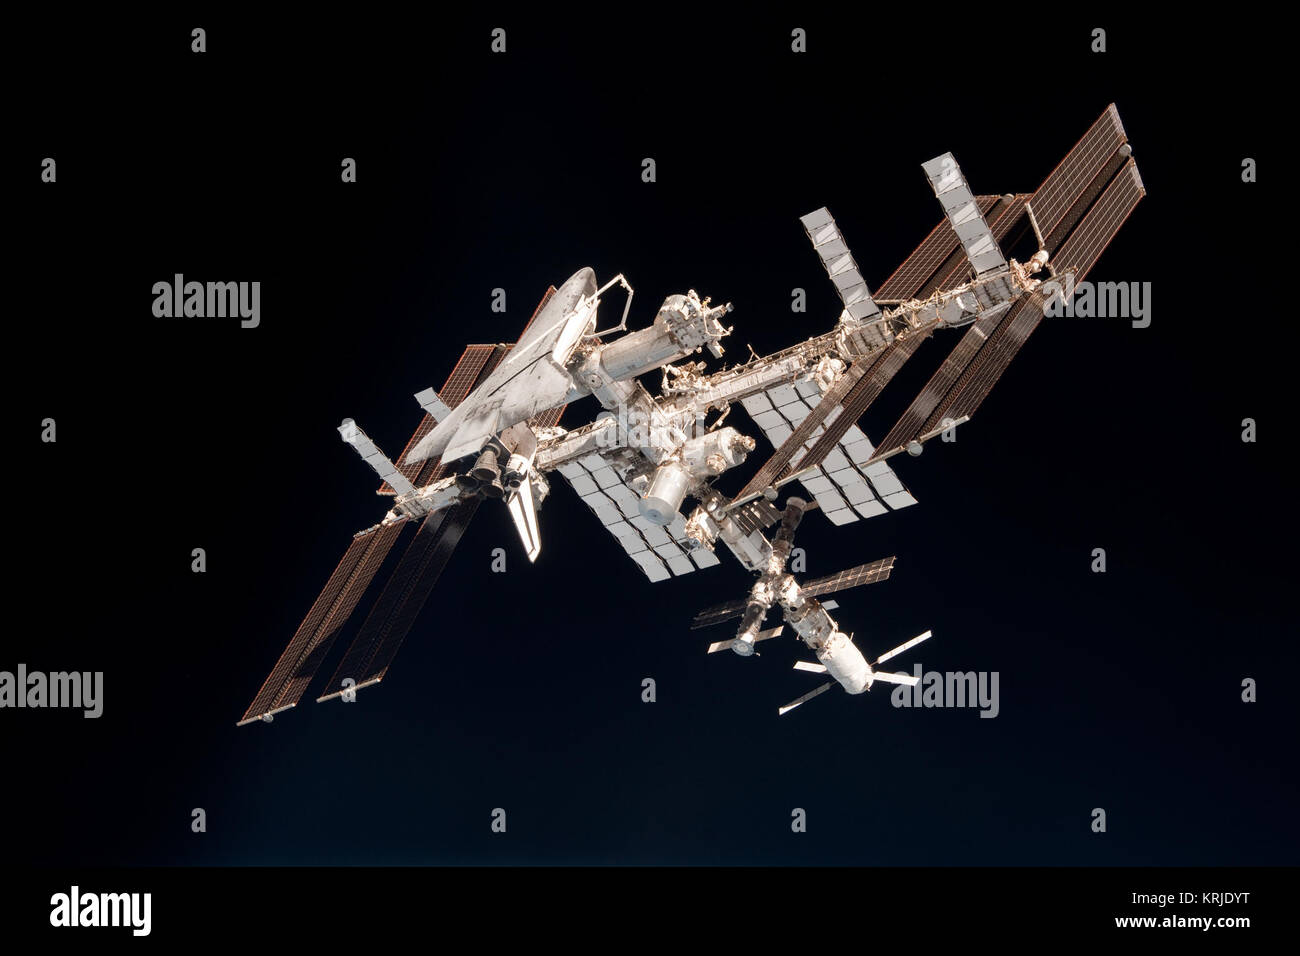 ISS and Endeavour seen from the Soyuz TMA-20 spacecraft 14 - Stock Image